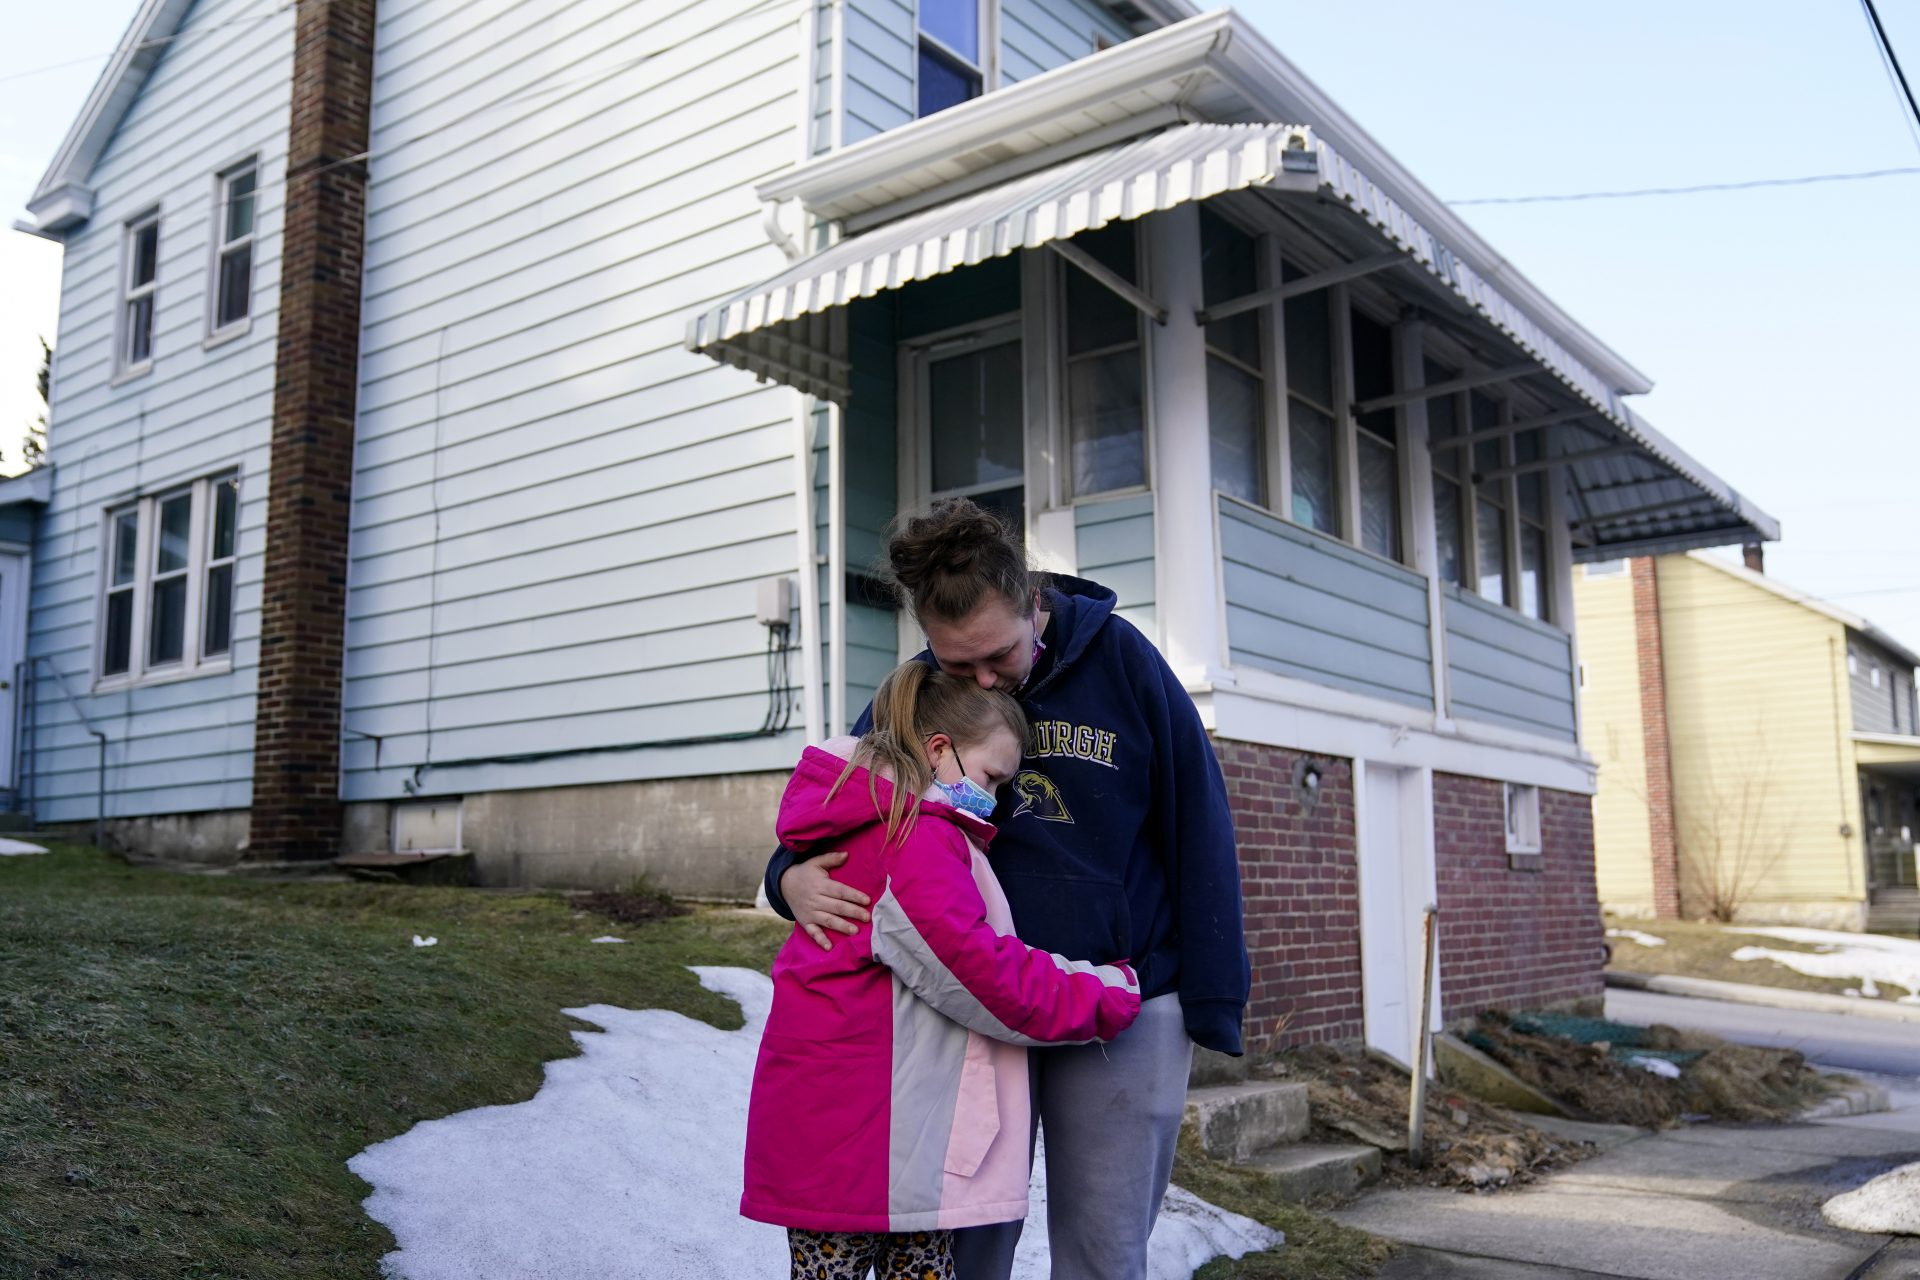 Melissa Weirich, right, hugs her daughter, Kacie Thompson, 9, outside the former home of her friend, Ava Lerario, Thursday, March 11, 2021, in Lansford, Pa. On May 26, 2020, Ava; her mother, Ashley Belson, and Ava's father, Marc Lerario were found fatally shot inside the home.